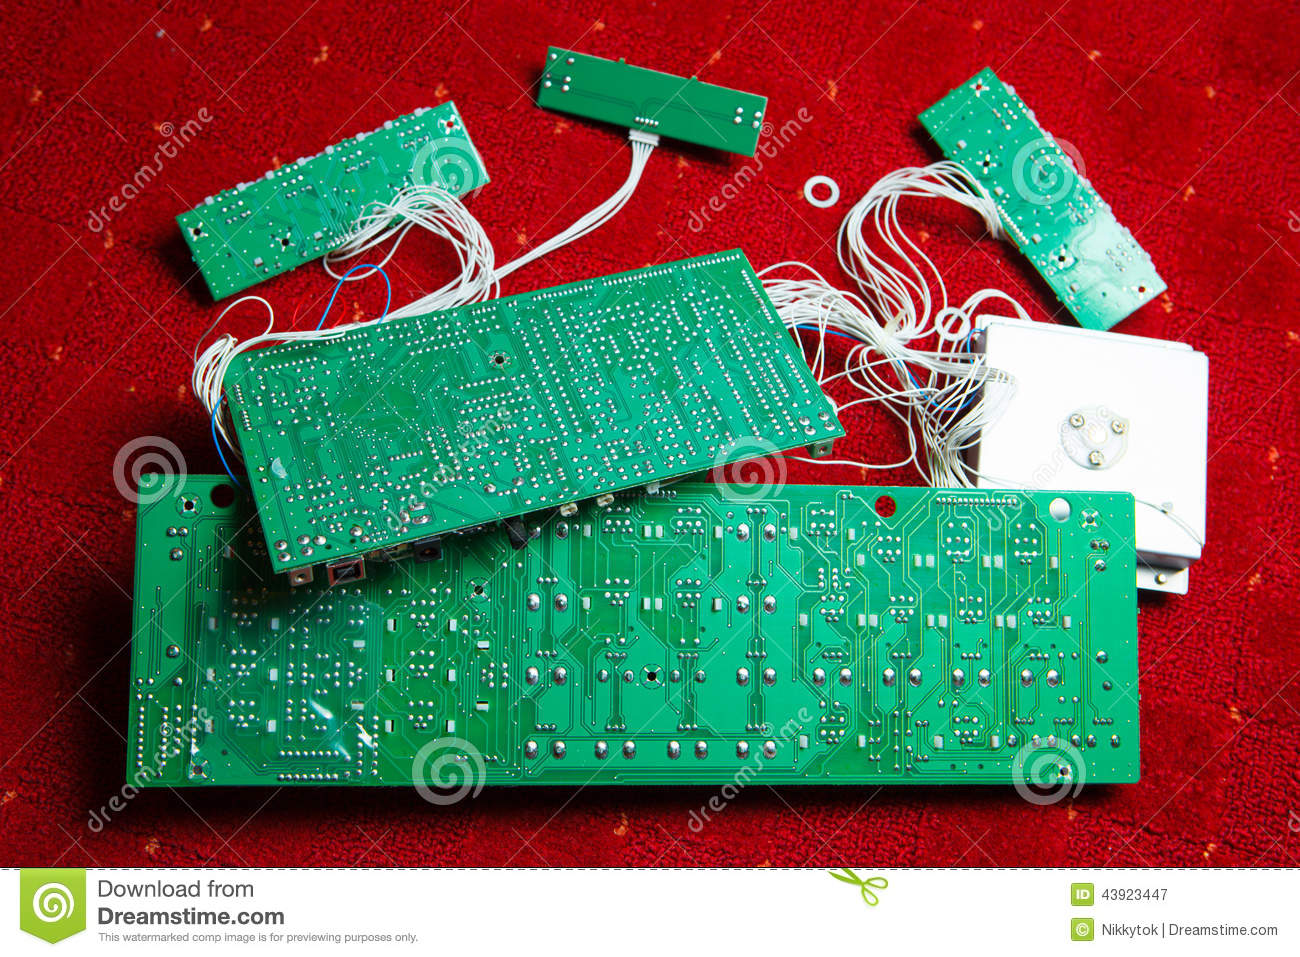 Cast Iron additionally Stock Photo Printed Circuit Boards Red Background Image43923447 besides Rebar besides Metal Recycling Copper Aluminum Scrap Prices Jacksonville FL besides Red Brass. on electronics scrap prices